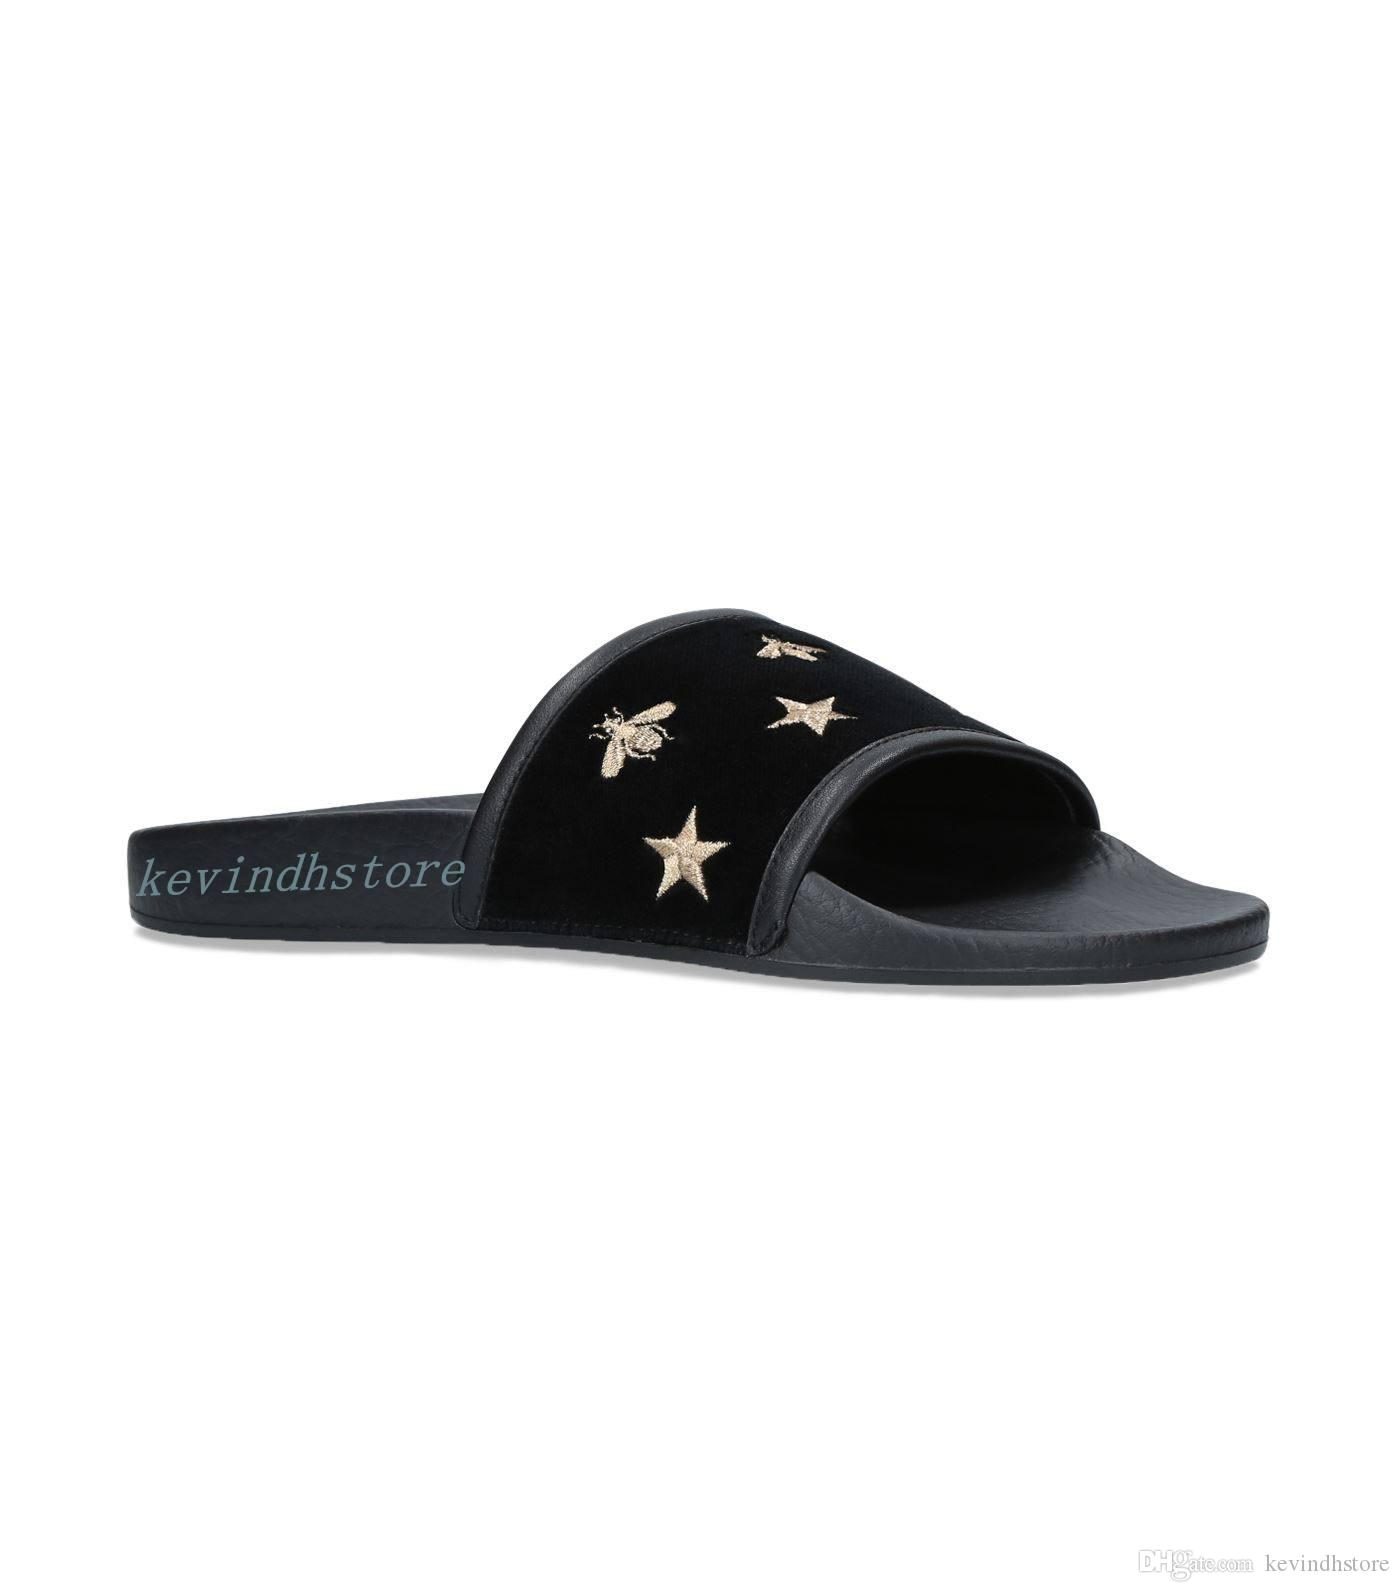 f04500a47c7f Factory Outlet Mens And Womens Fashion Gold Tone Bug And Star Embroidered  Slide Sandals Slippers Causal Flip Flops Loafers For Women Clogs For Women  From ...